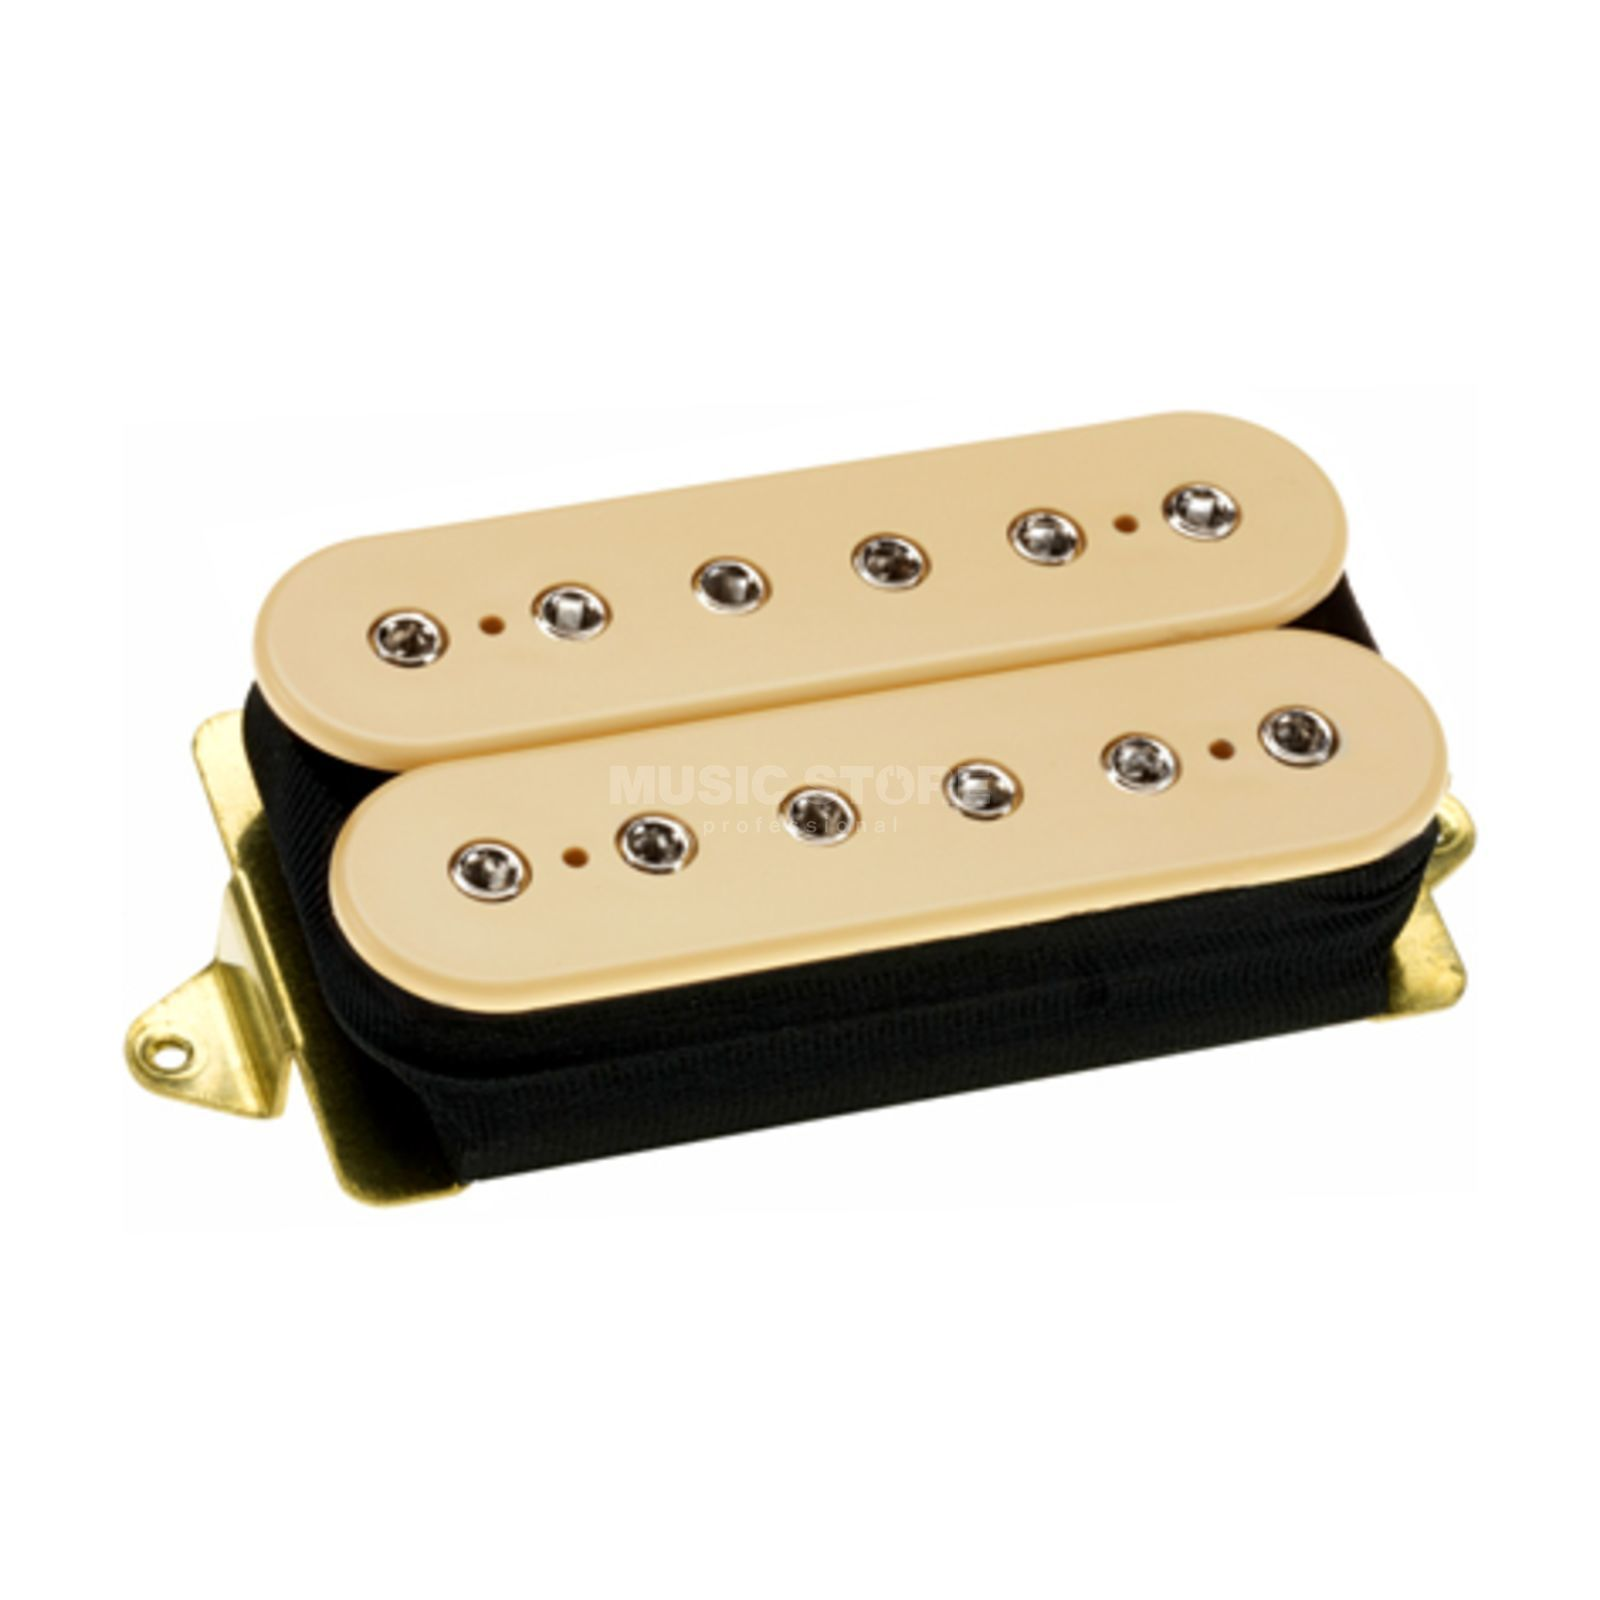 DiMarzio DP100 CR Super Distortion Bridge Produktbillede